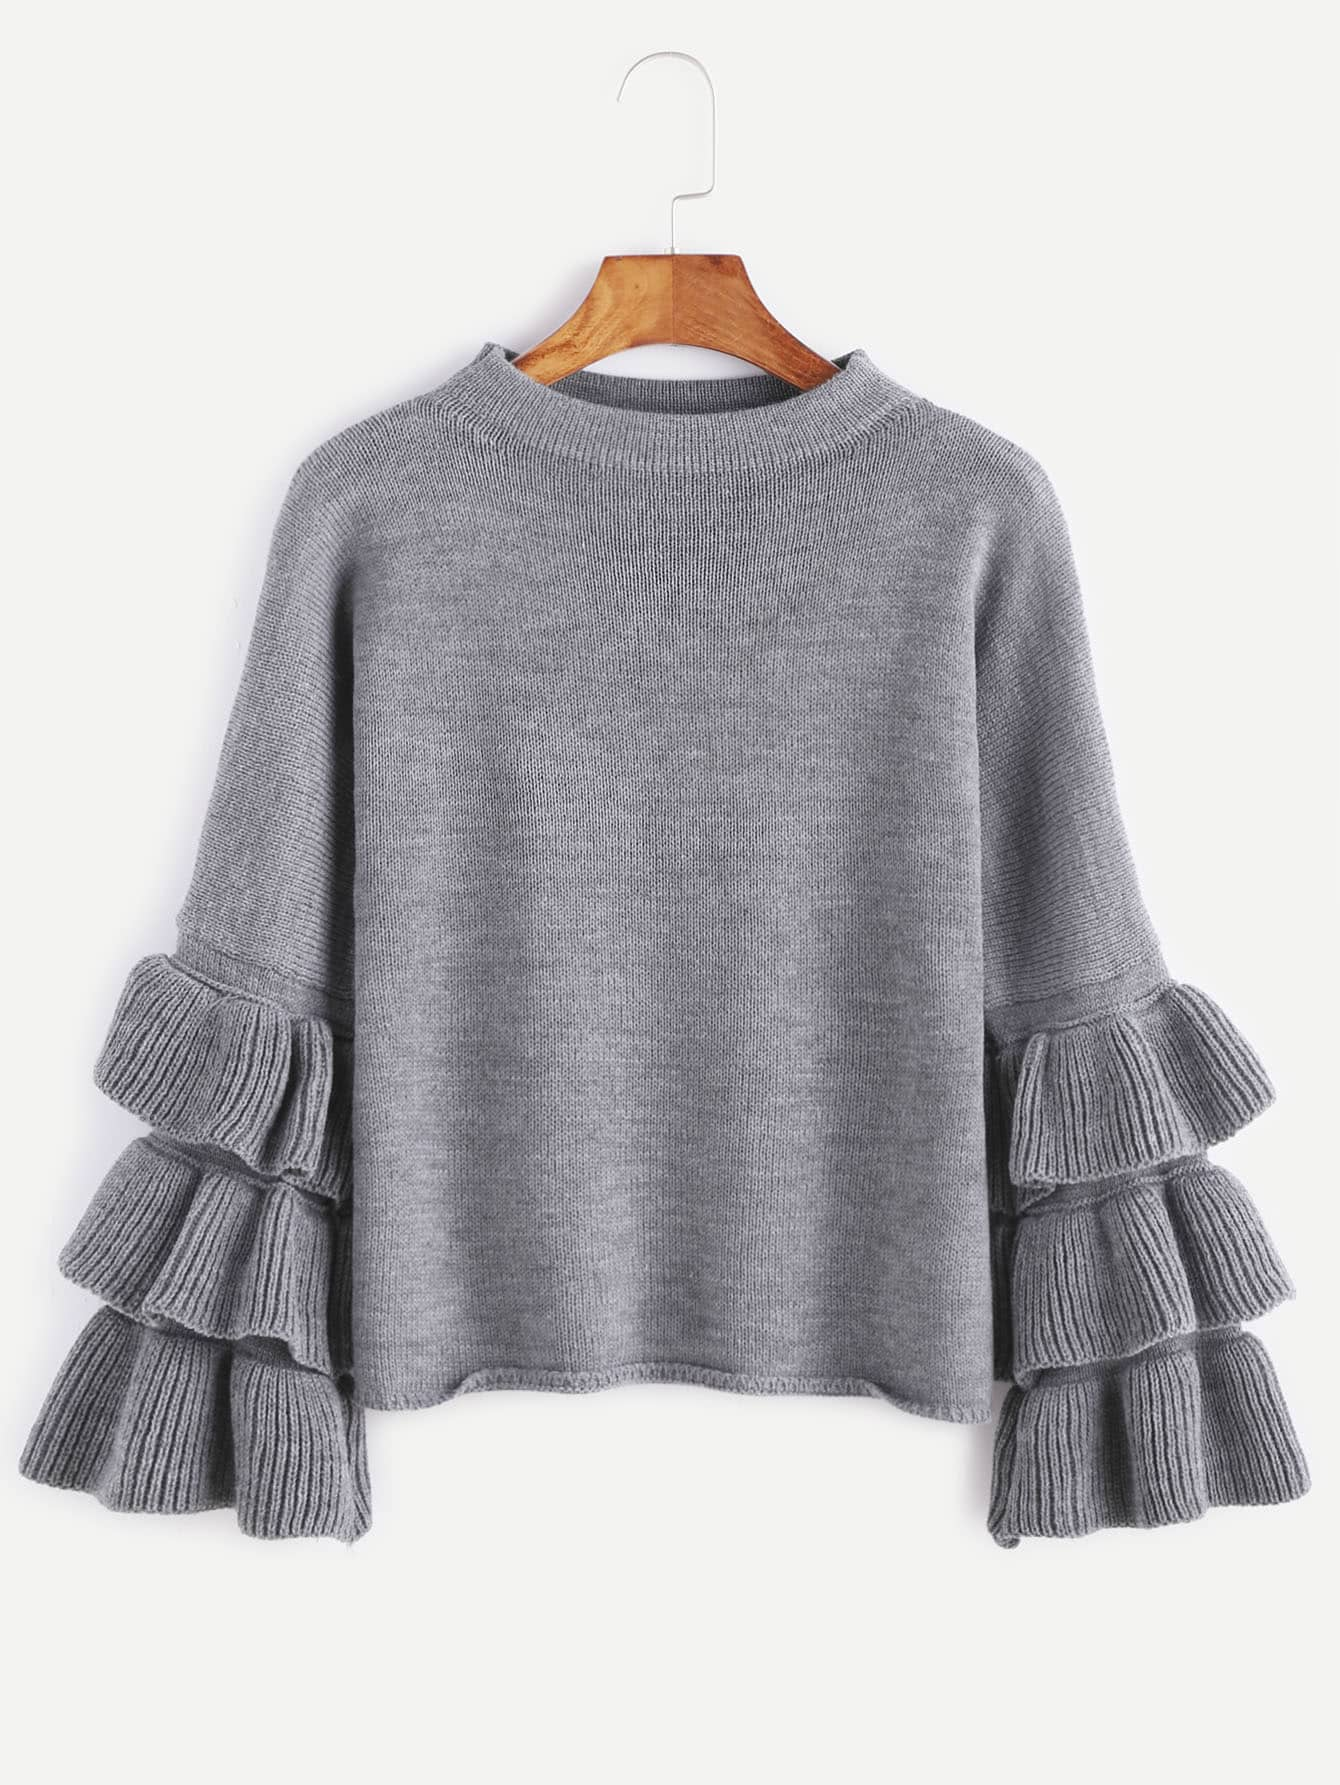 Grey Layered Ruffle Sleeve Pullover Sweater pearl detail layered frill sleeve top